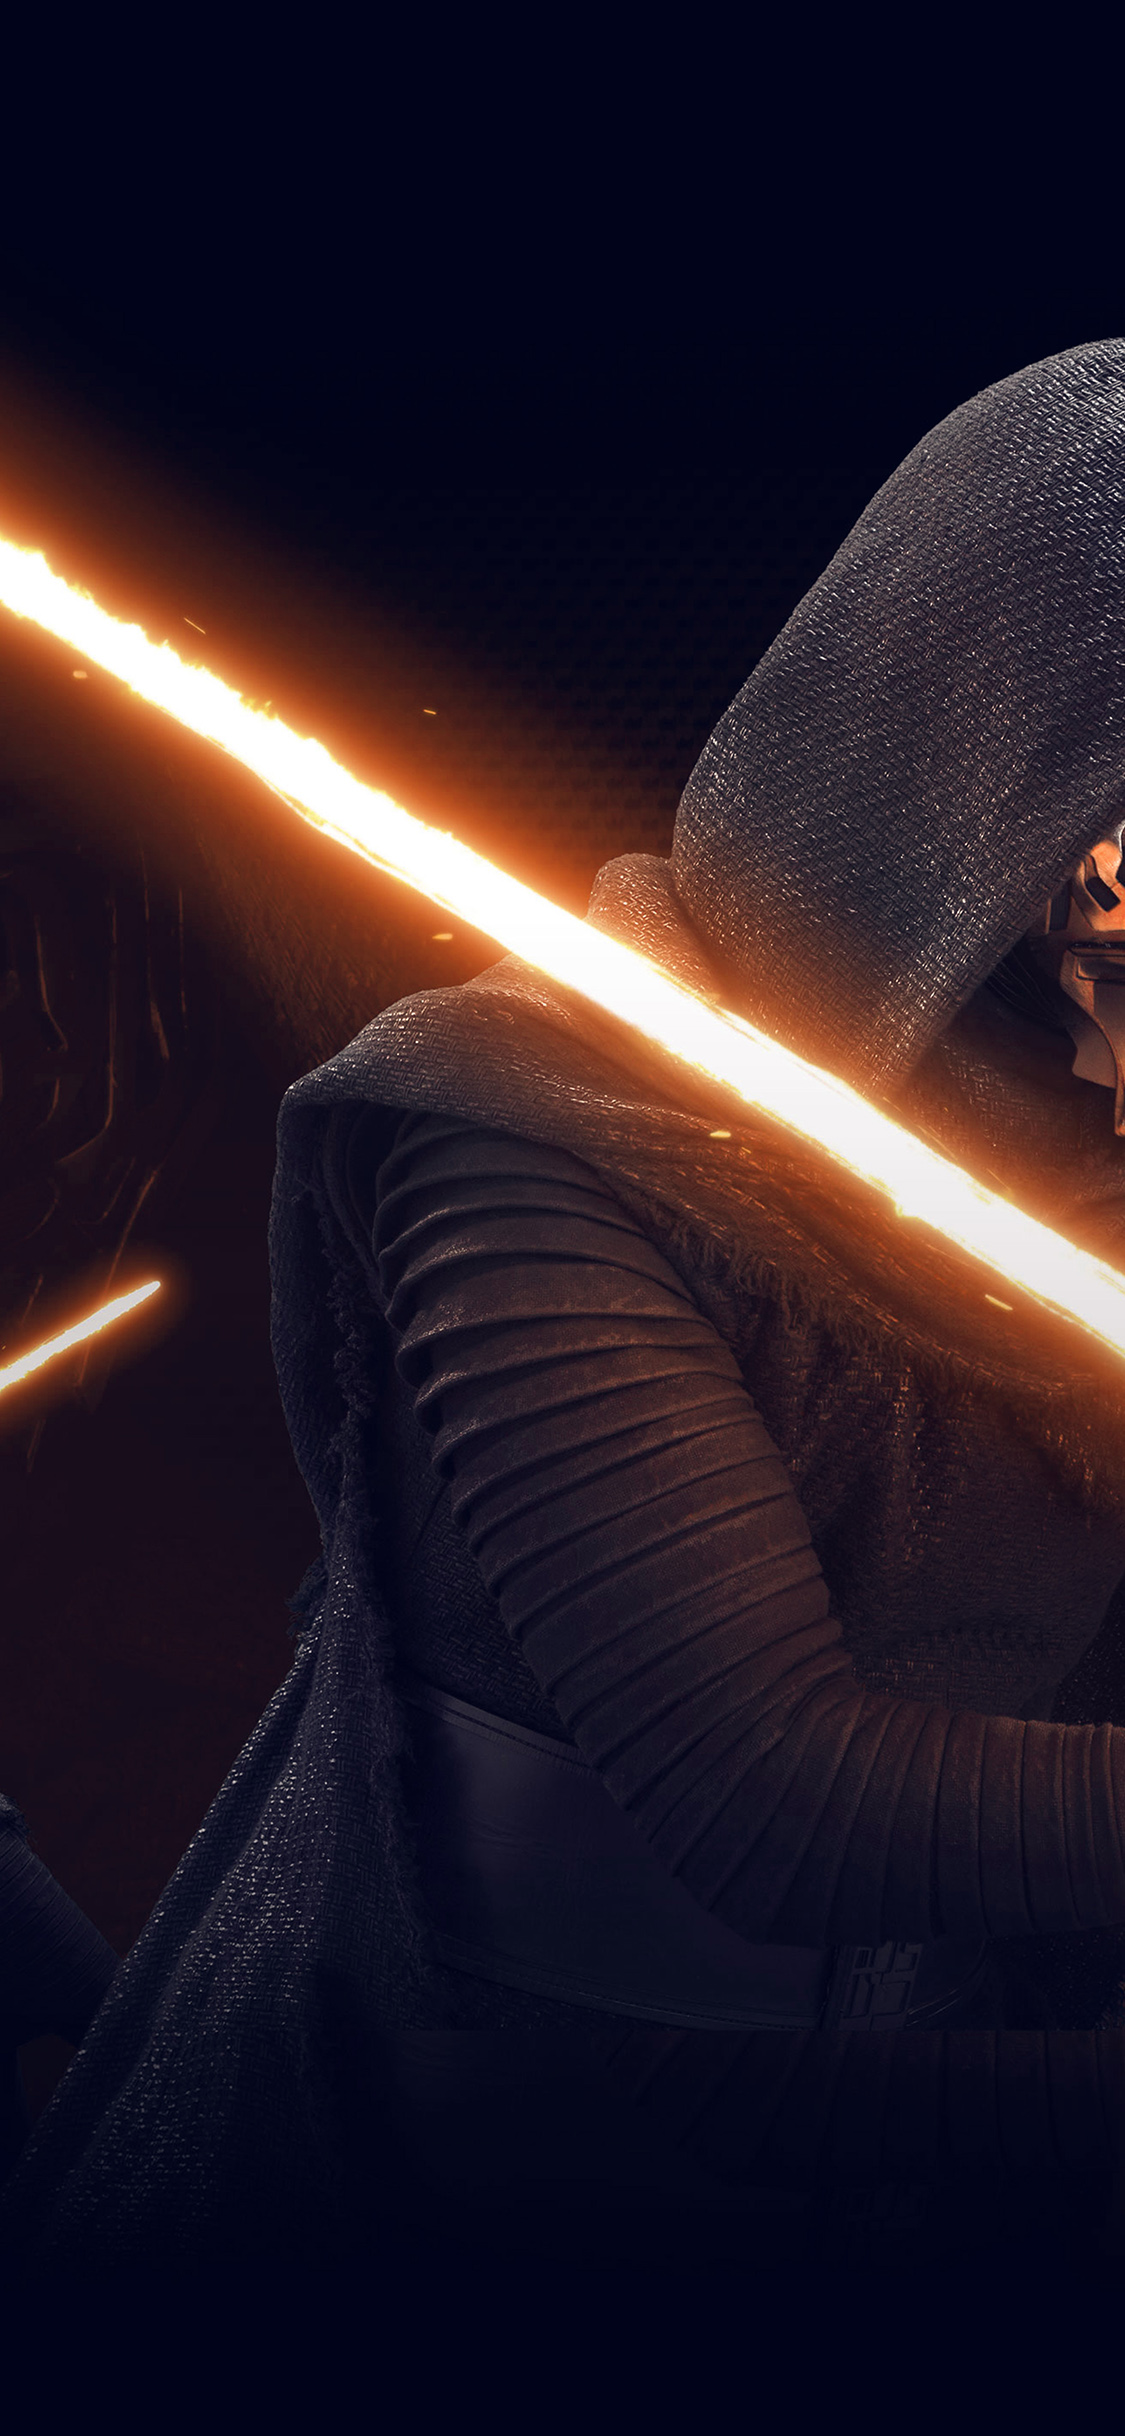 Google Desktop Wallpaper Hd At11 Starwars Kylo Ren Dark Orange Lightsaber Art